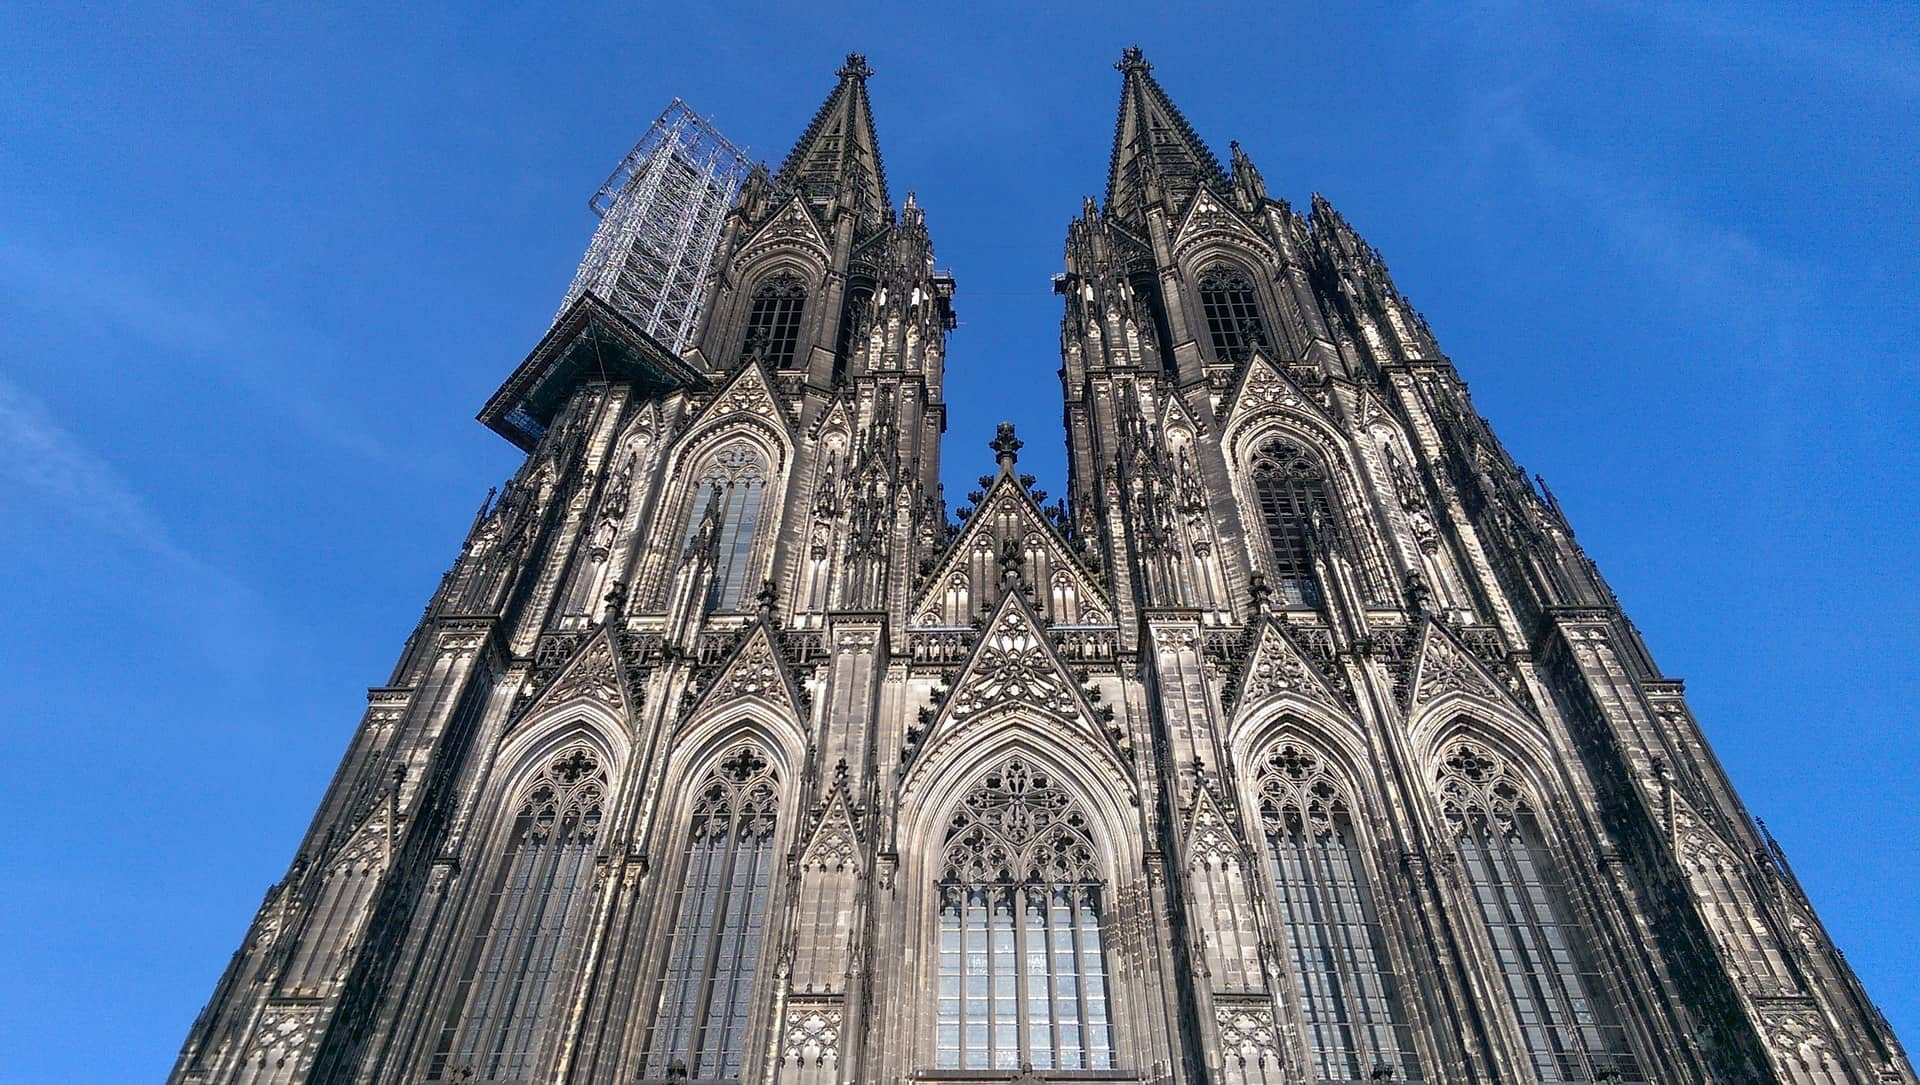 Germany - Cologne - Kölner Dom - Cathedral facade